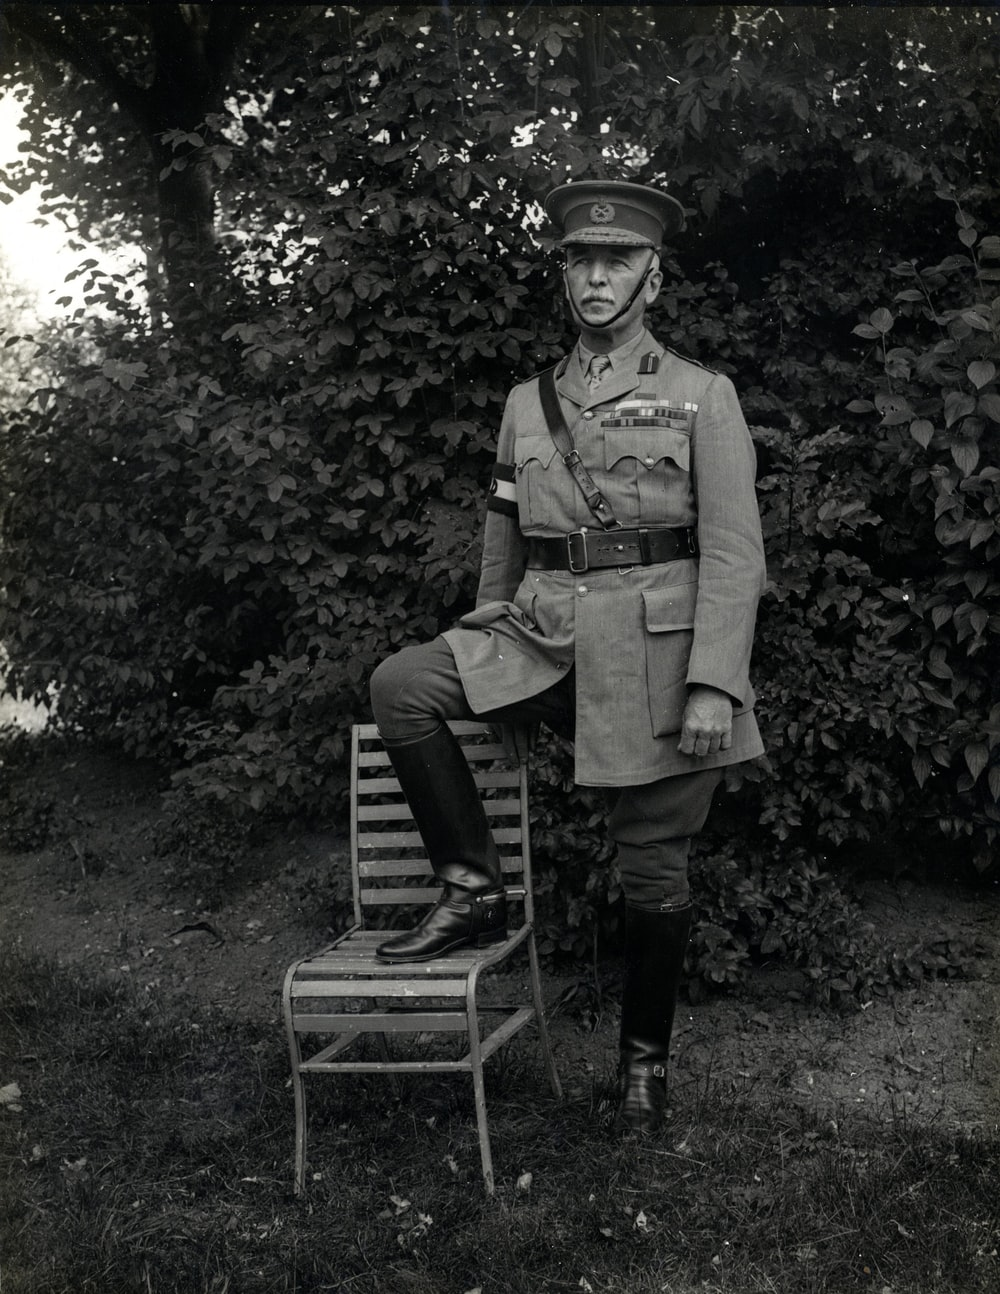 man standing with right foot on chair